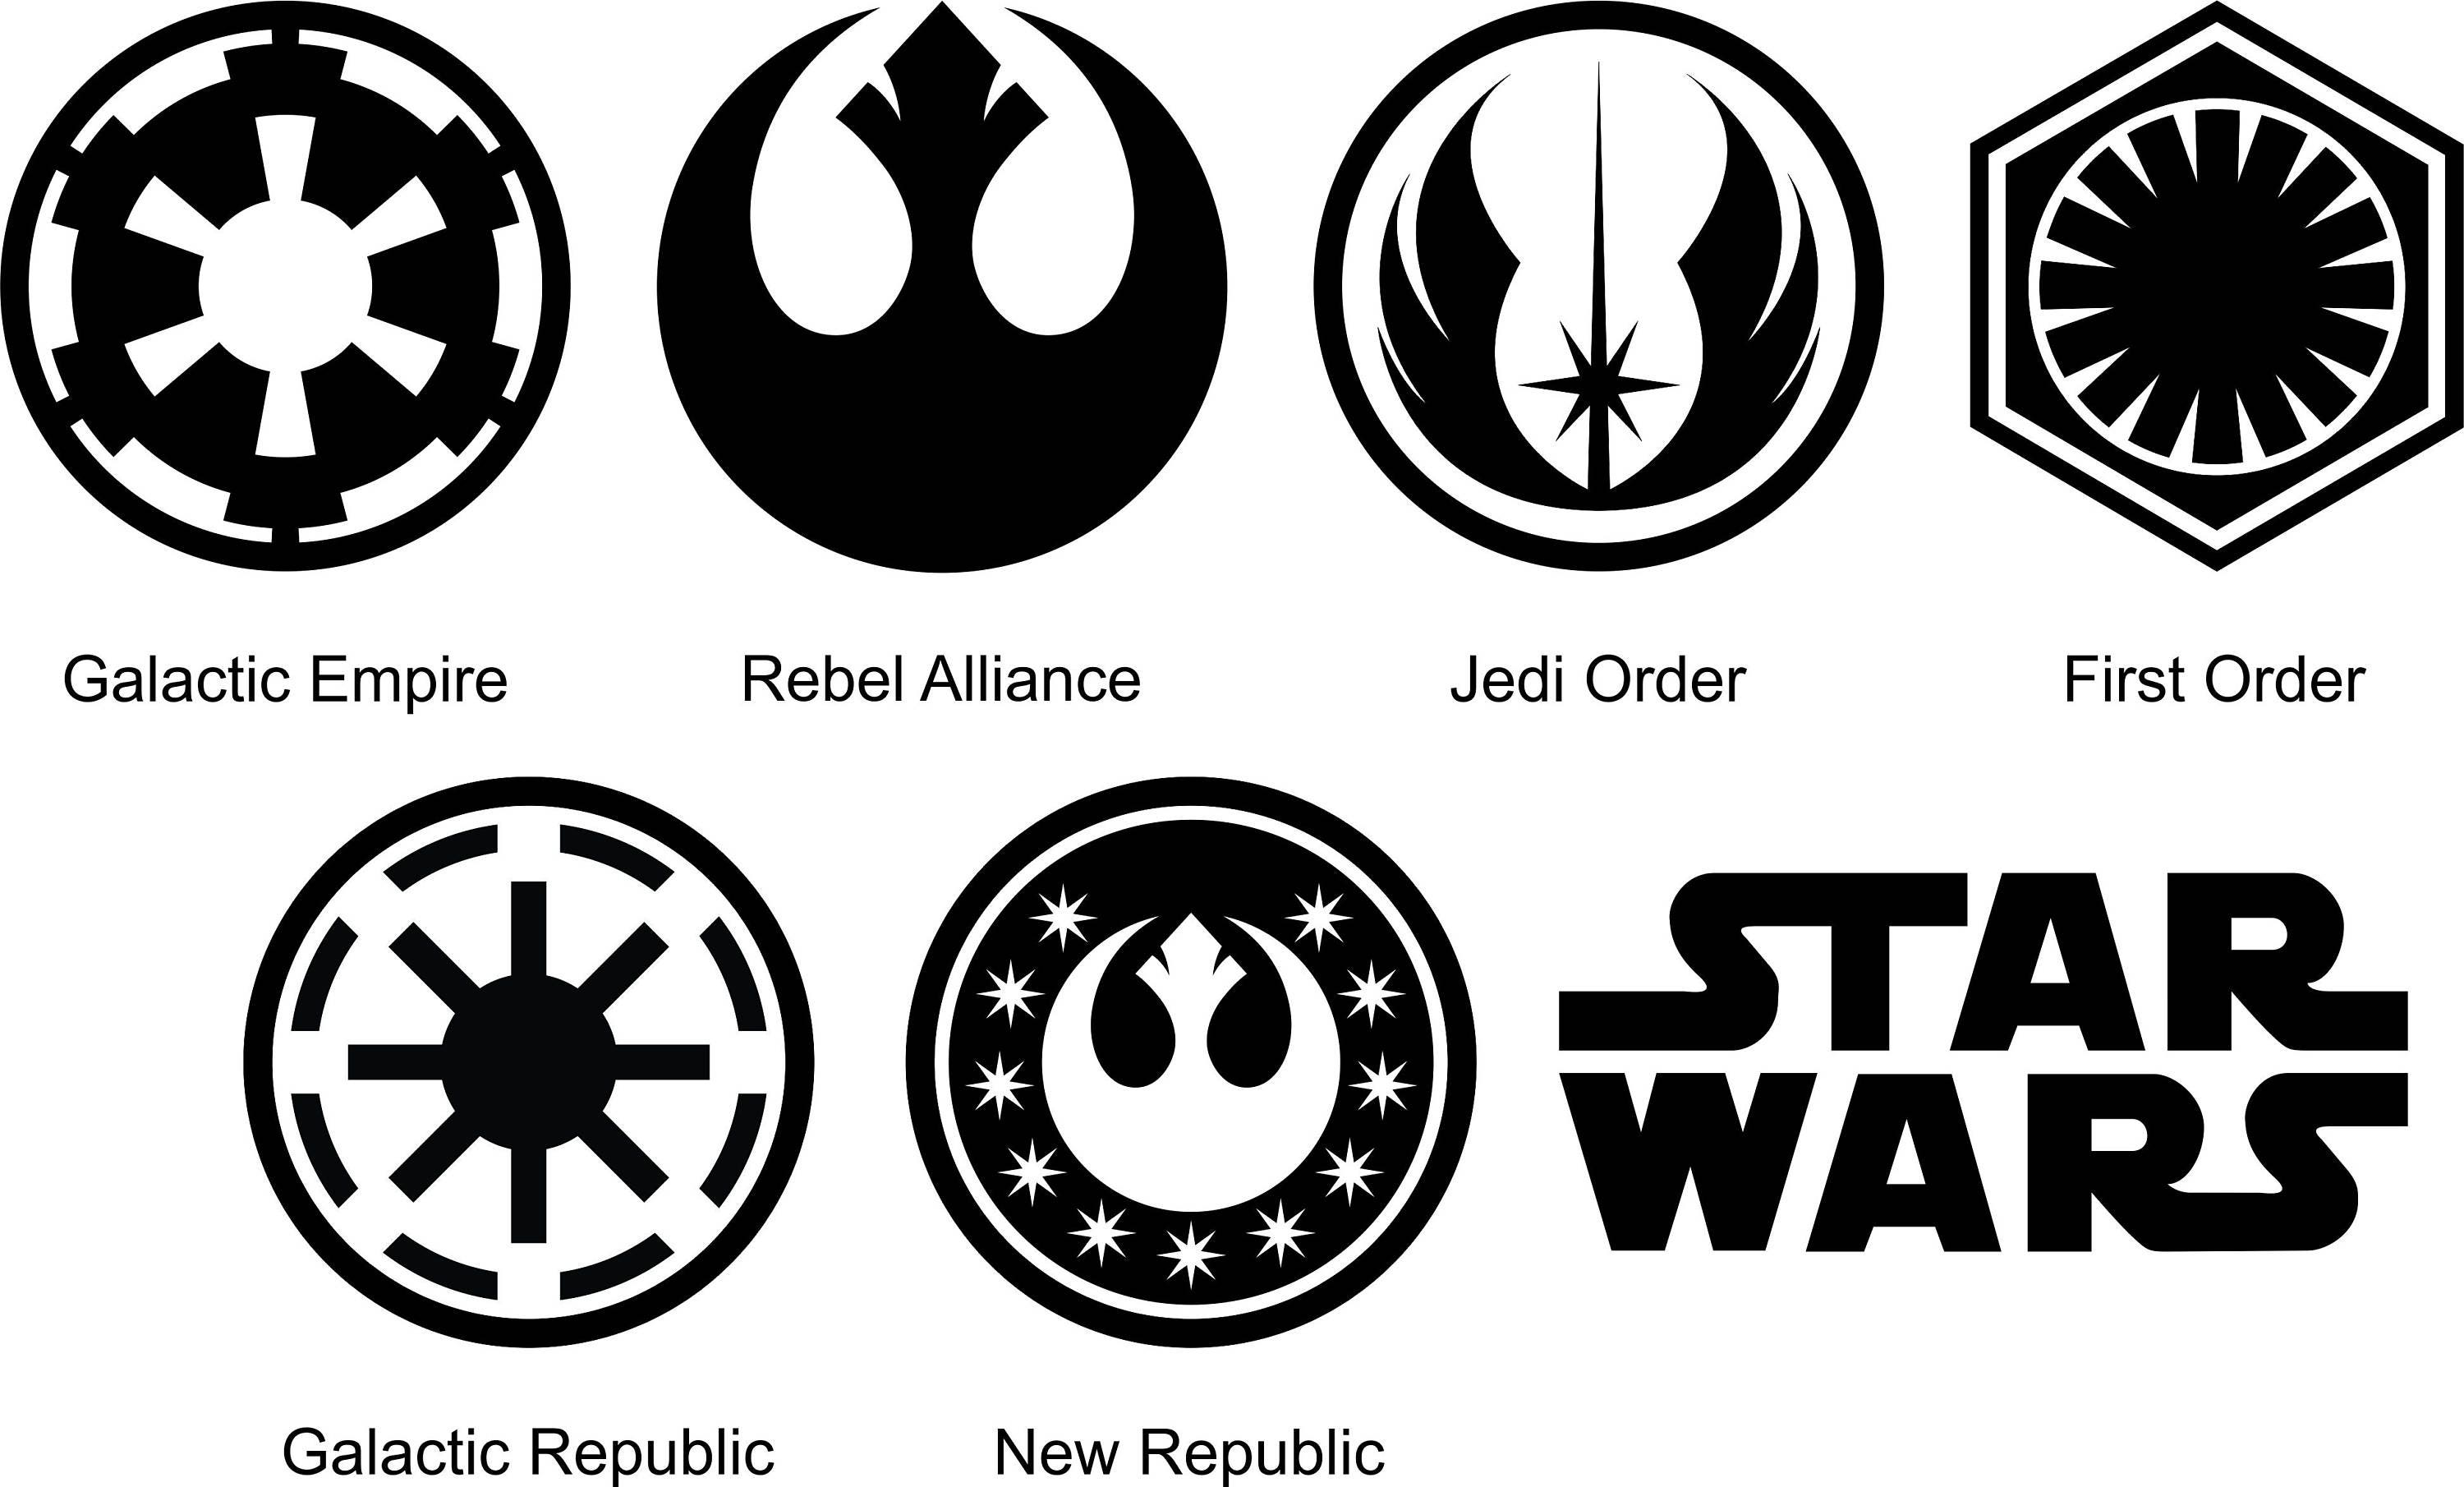 Galactic republic symbol choice image symbol and sign ideas star wars first order symbol image collections symbol and sign ideas star wars symbols silhouette and biocorpaavc